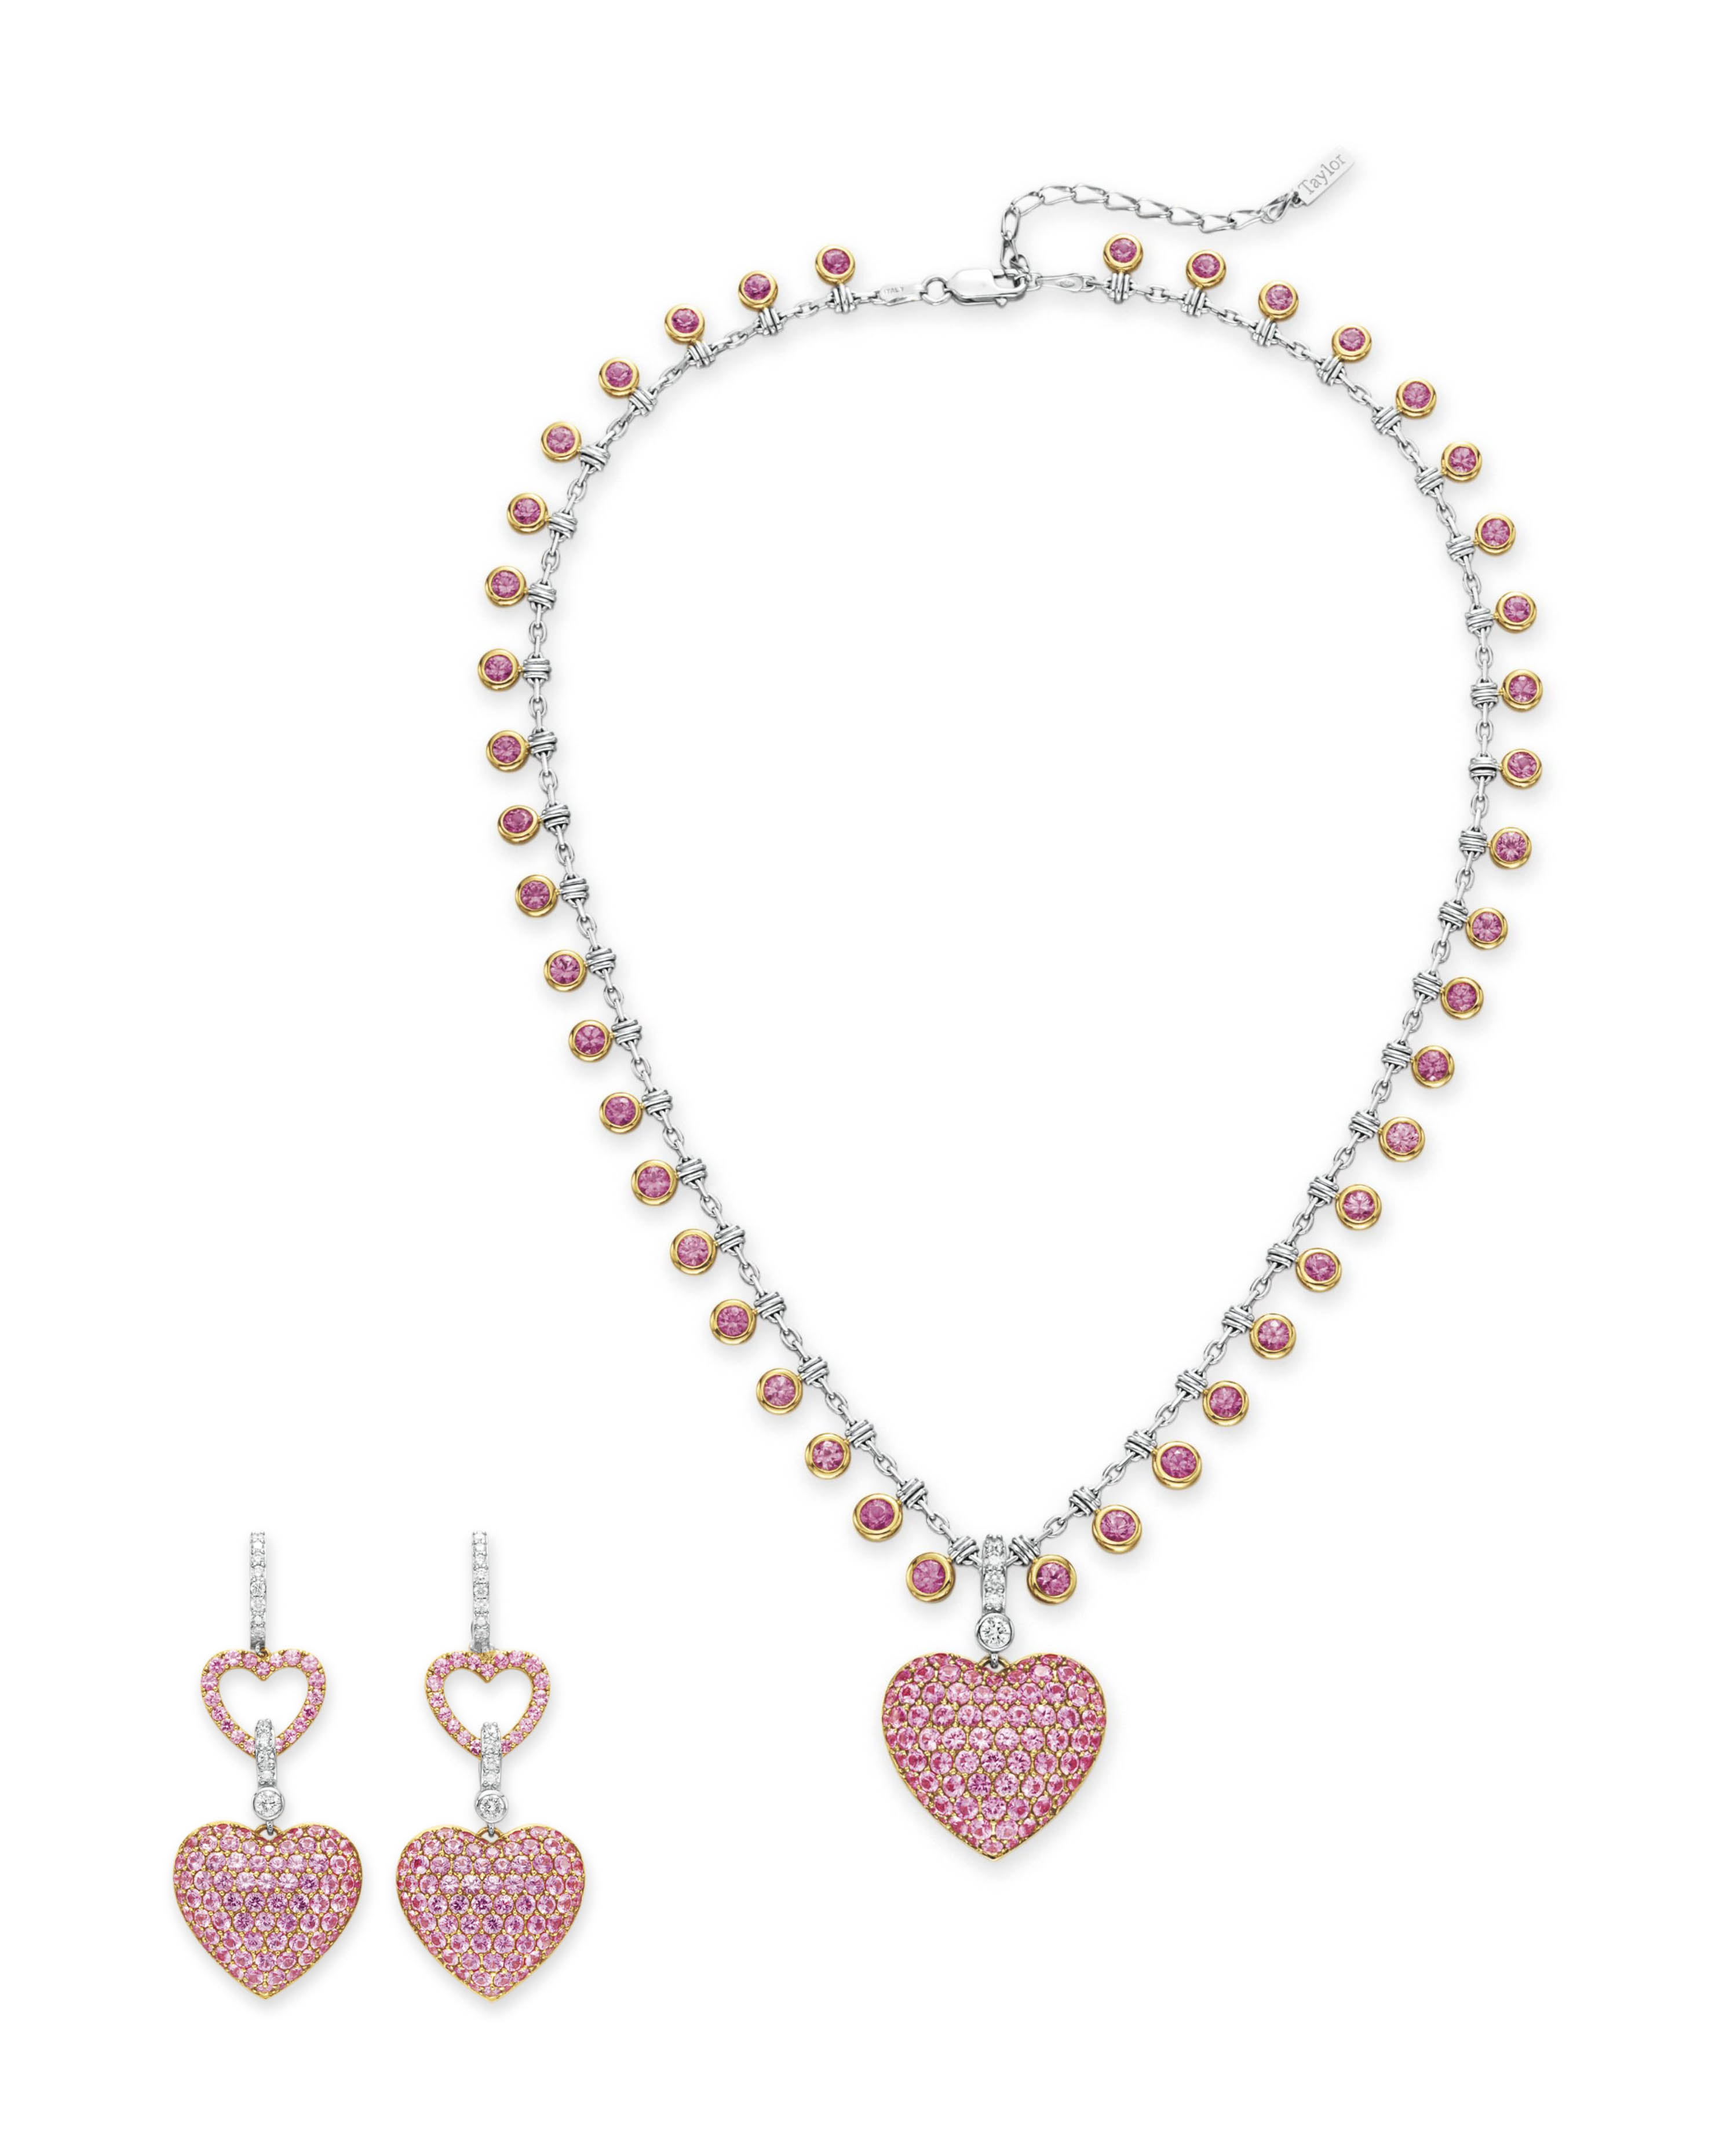 A SET OF DIAMOND AND PINK SAPPHIRE JEWELRY, BY HOUSE OF TAYLOR